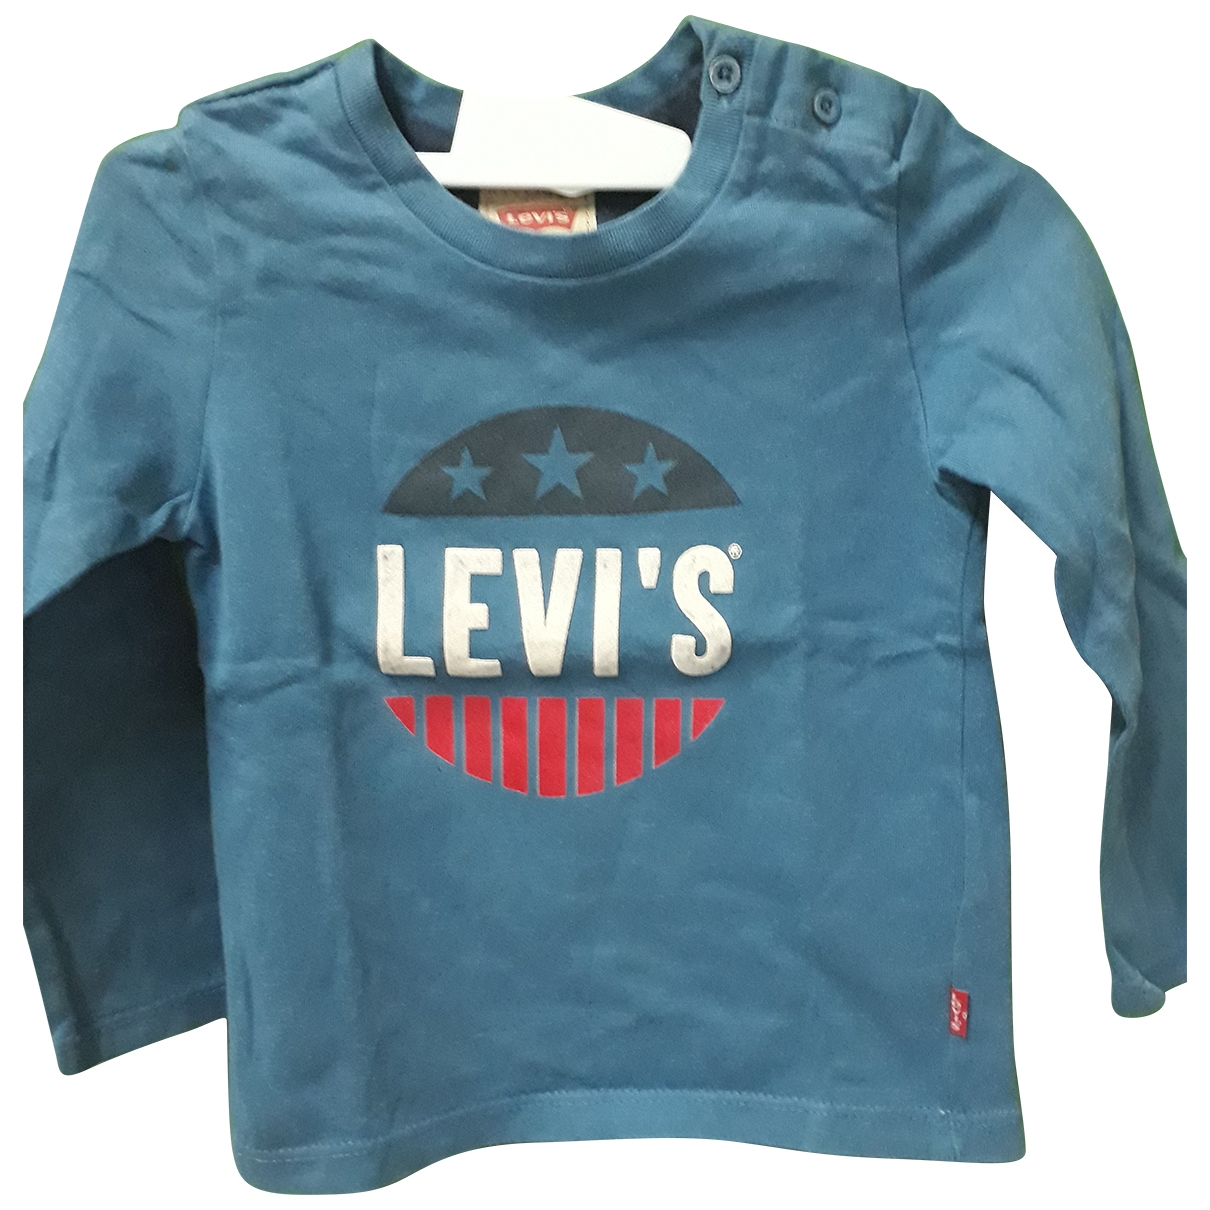 Levi's \N Blue Cotton Knitwear for Kids 2 years - until 34 inches UK